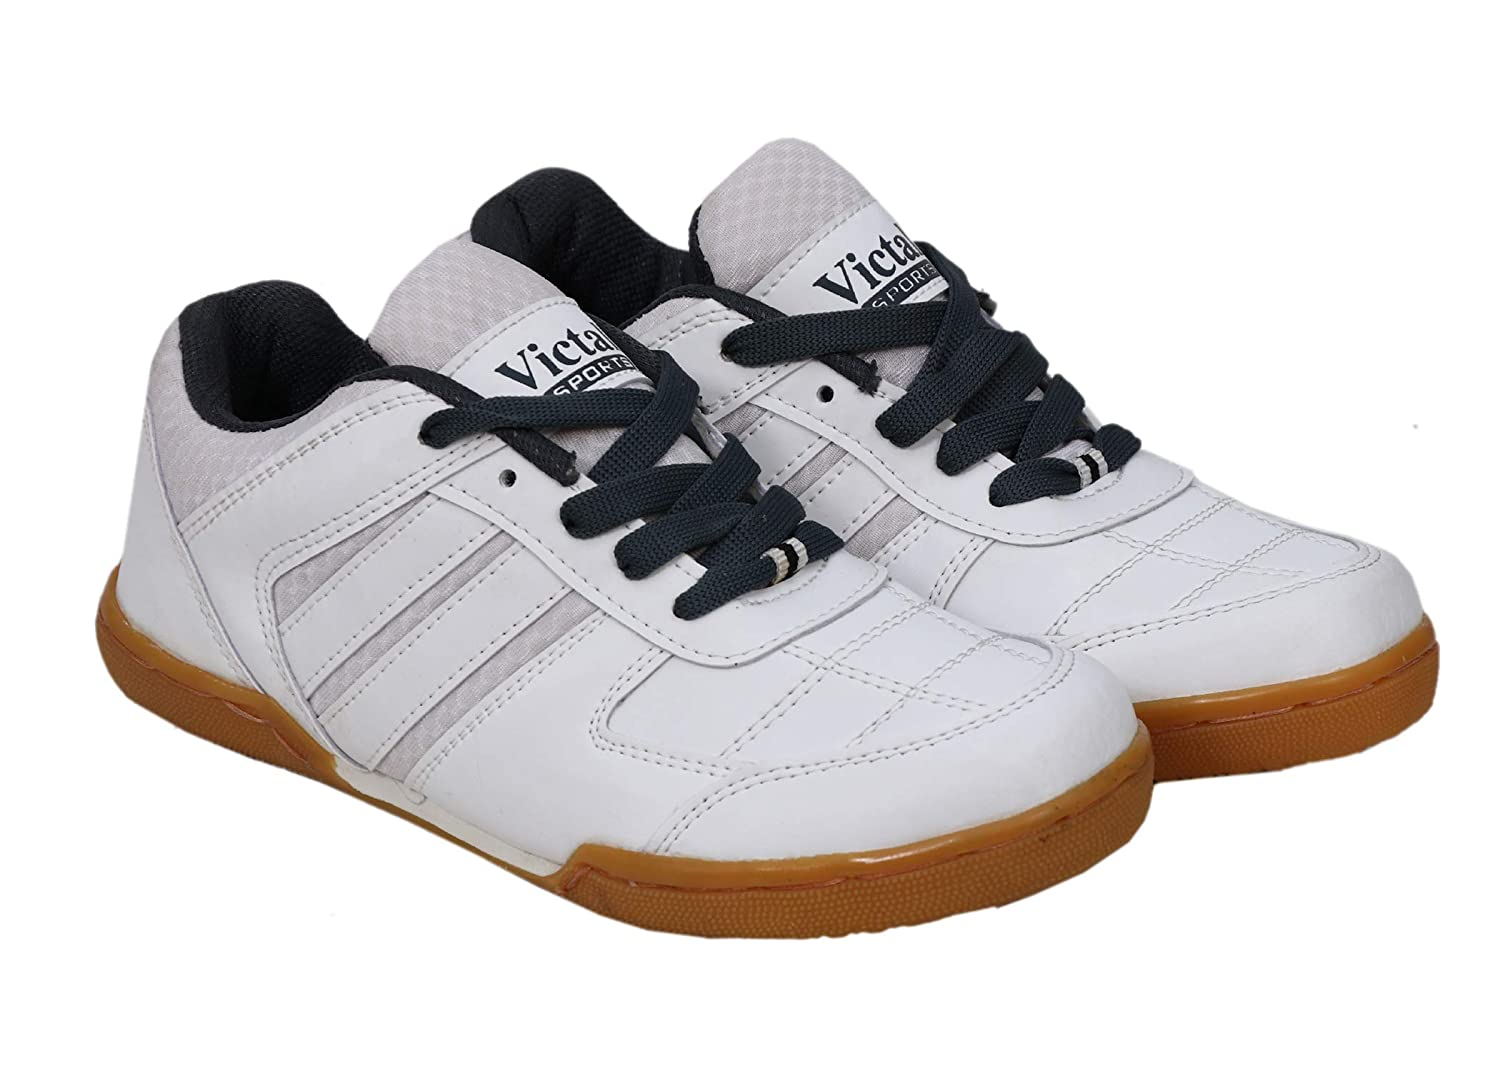 Victall Badminton Shoes Light Weight